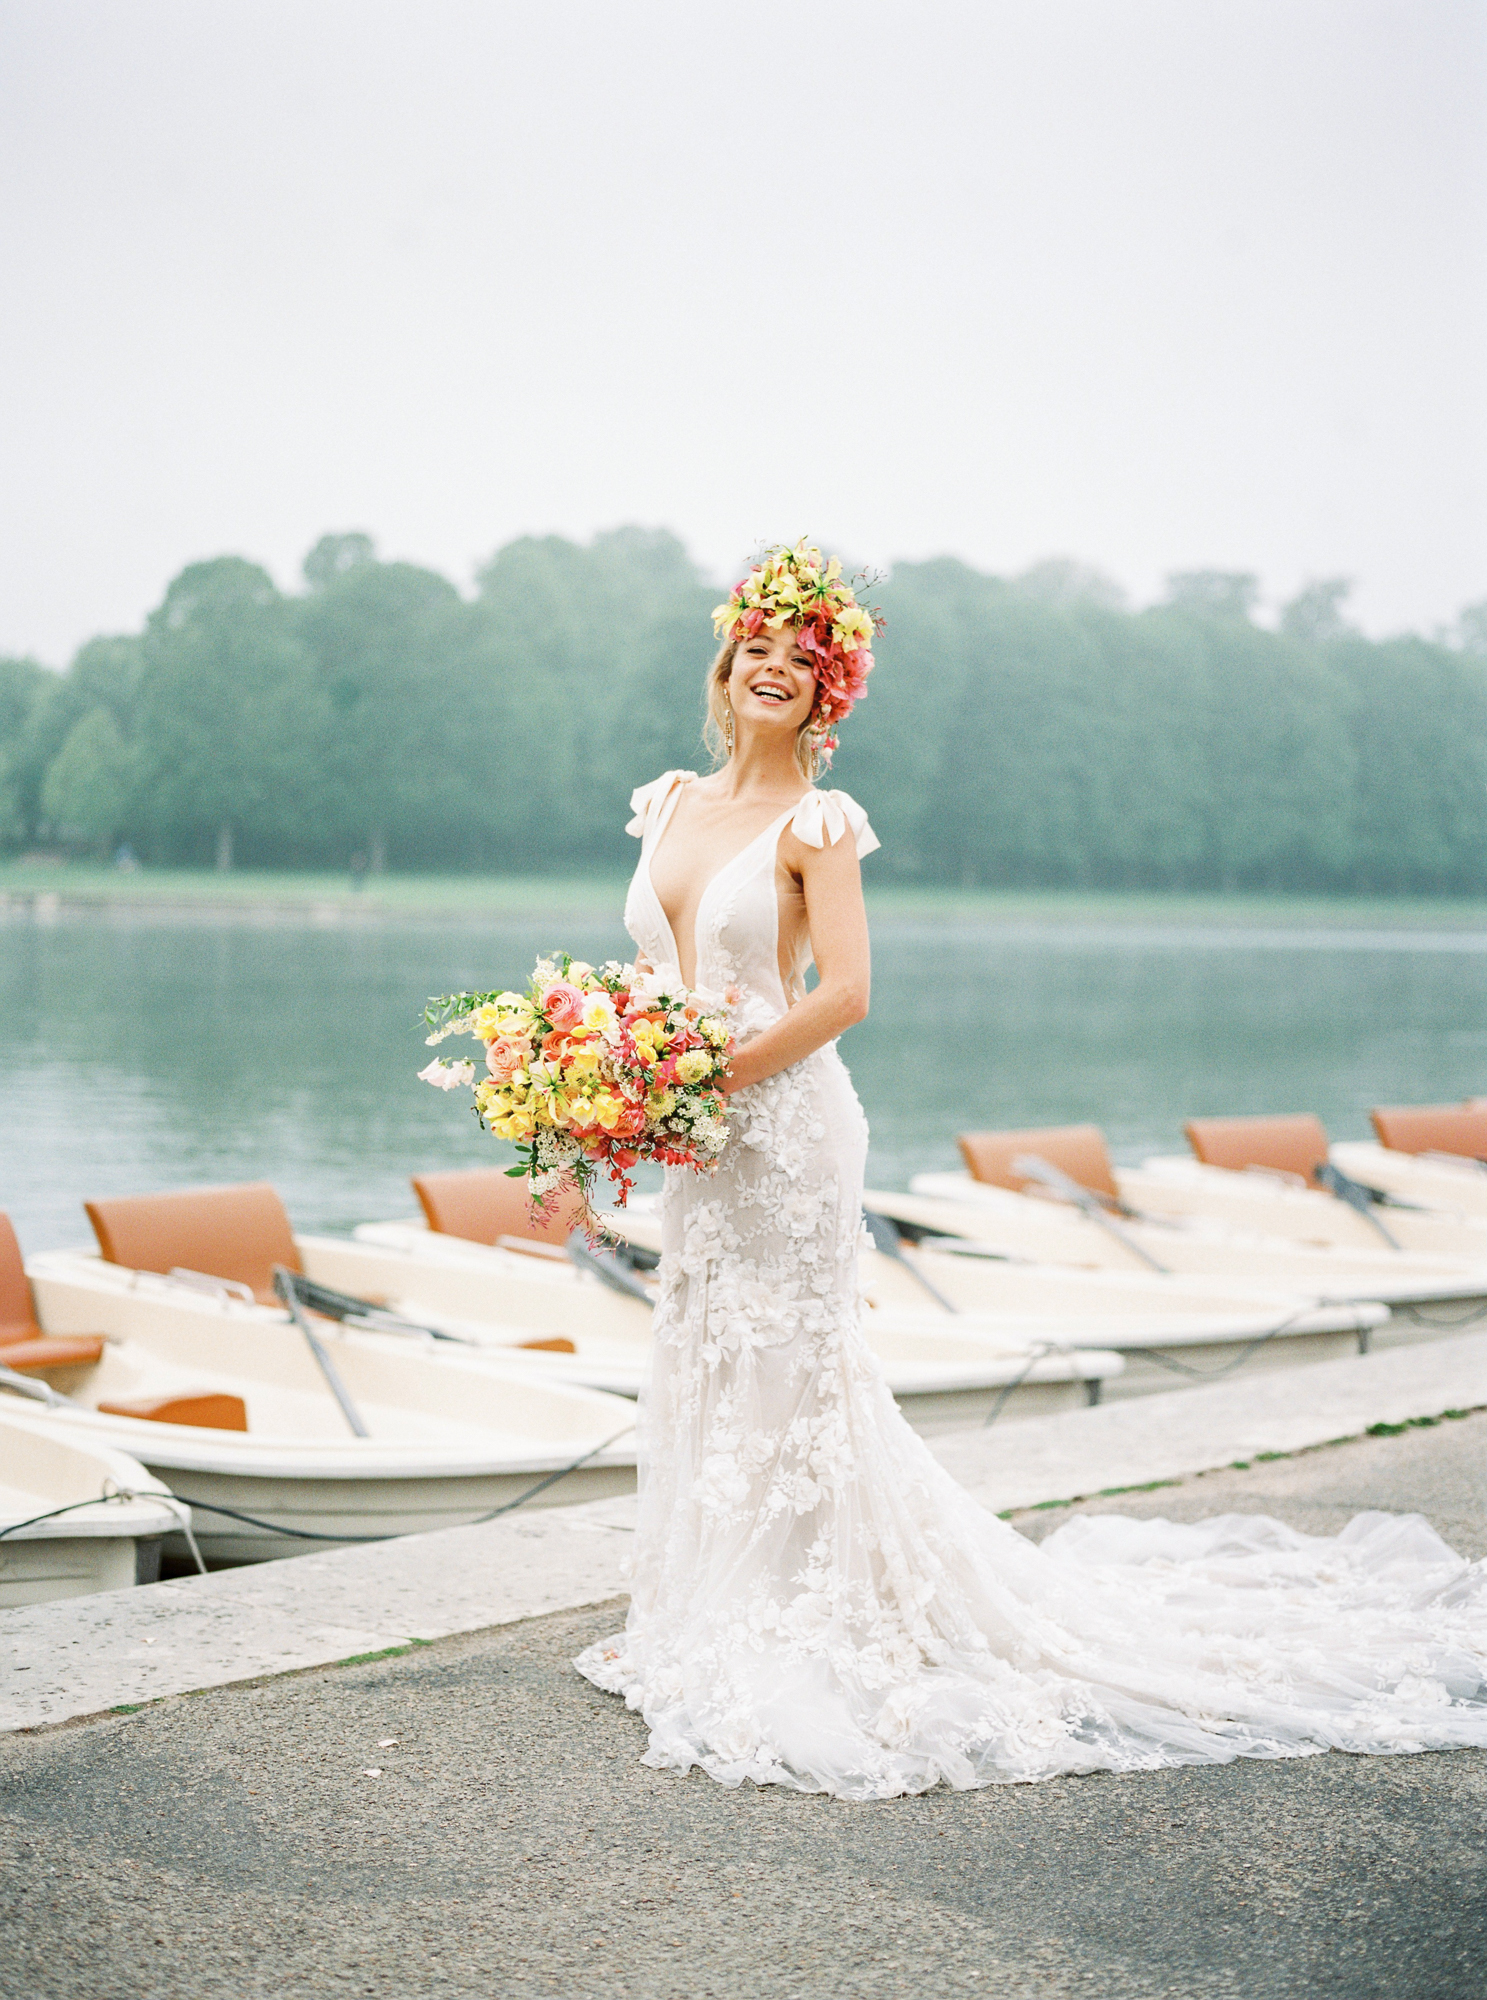 travellur_photoshoot__summer_in_versailles_wedding_flowers_bridal_luxe_shoot_floral_france_dress_wedding_gown_galialahav.jpg